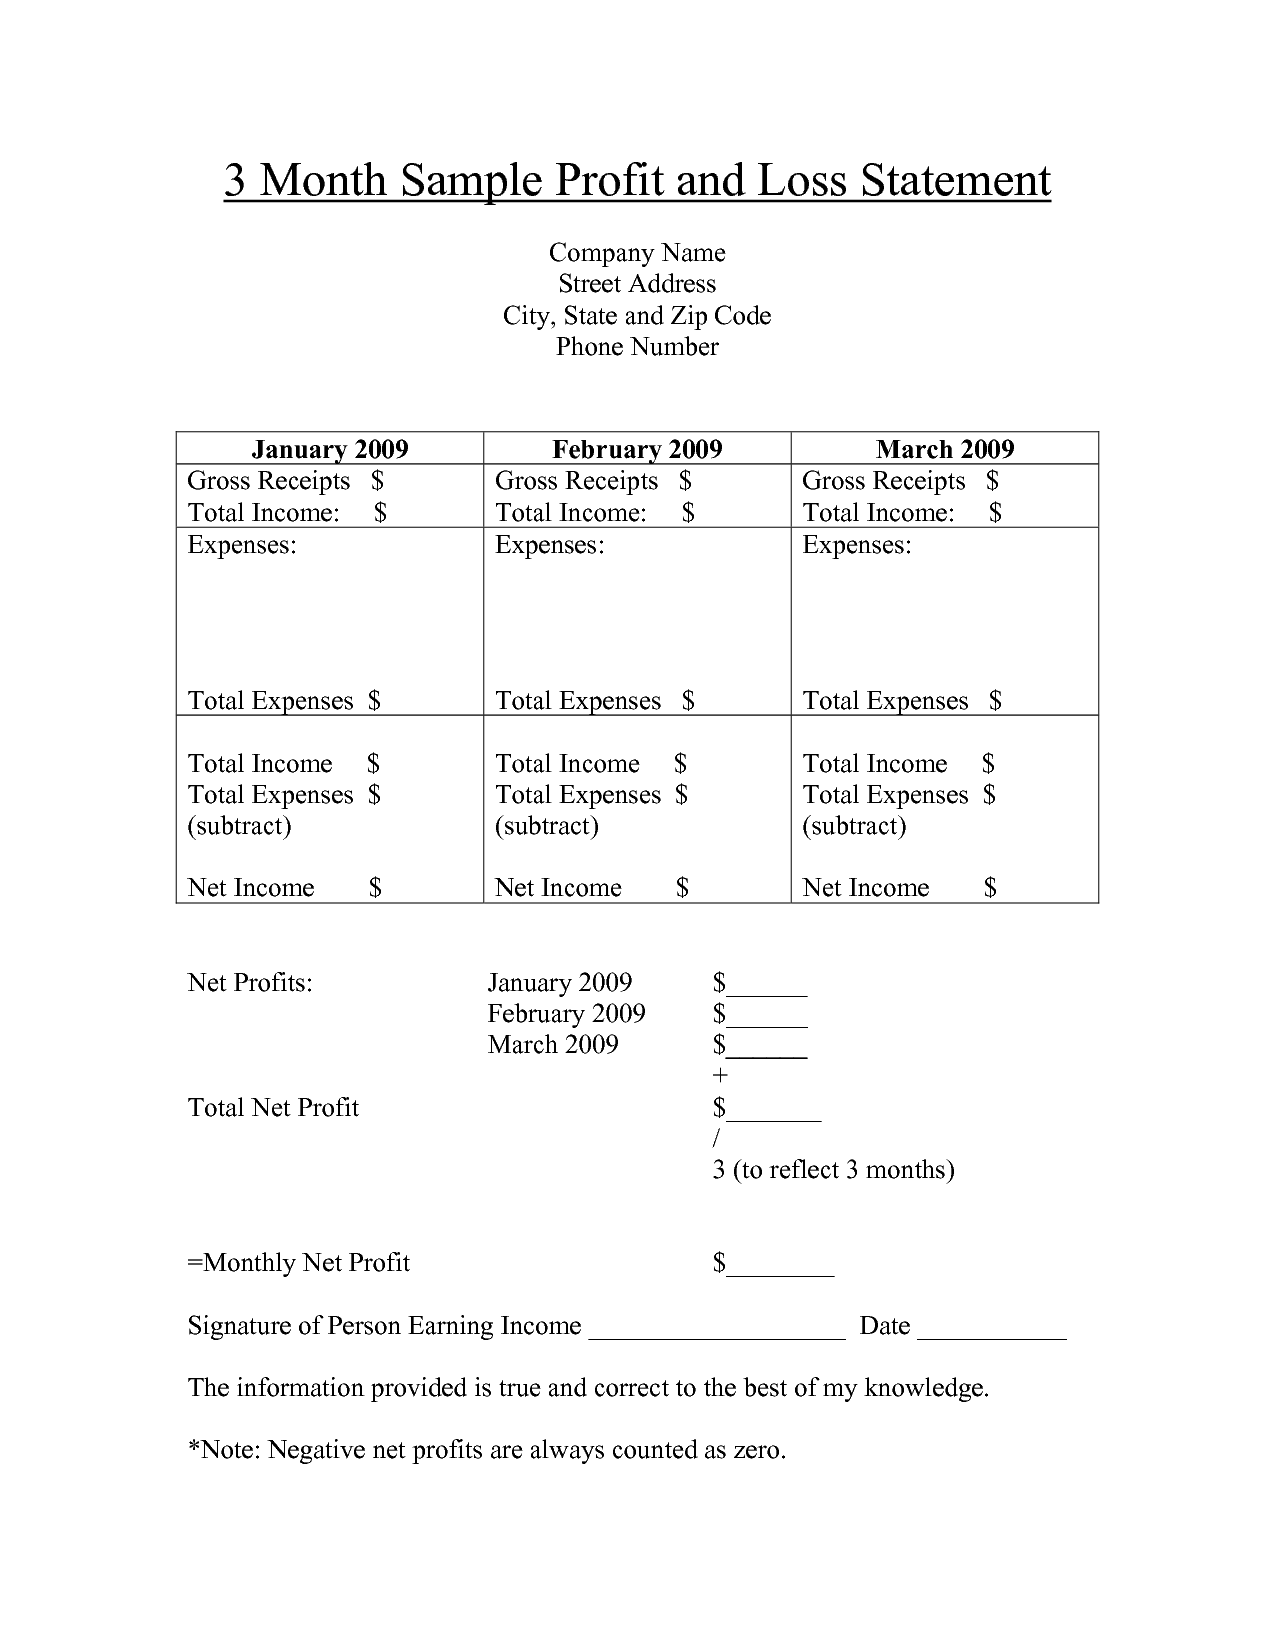 Phone Number Template Profit And Loss Statement Form Printable  Month Sample Profit And .